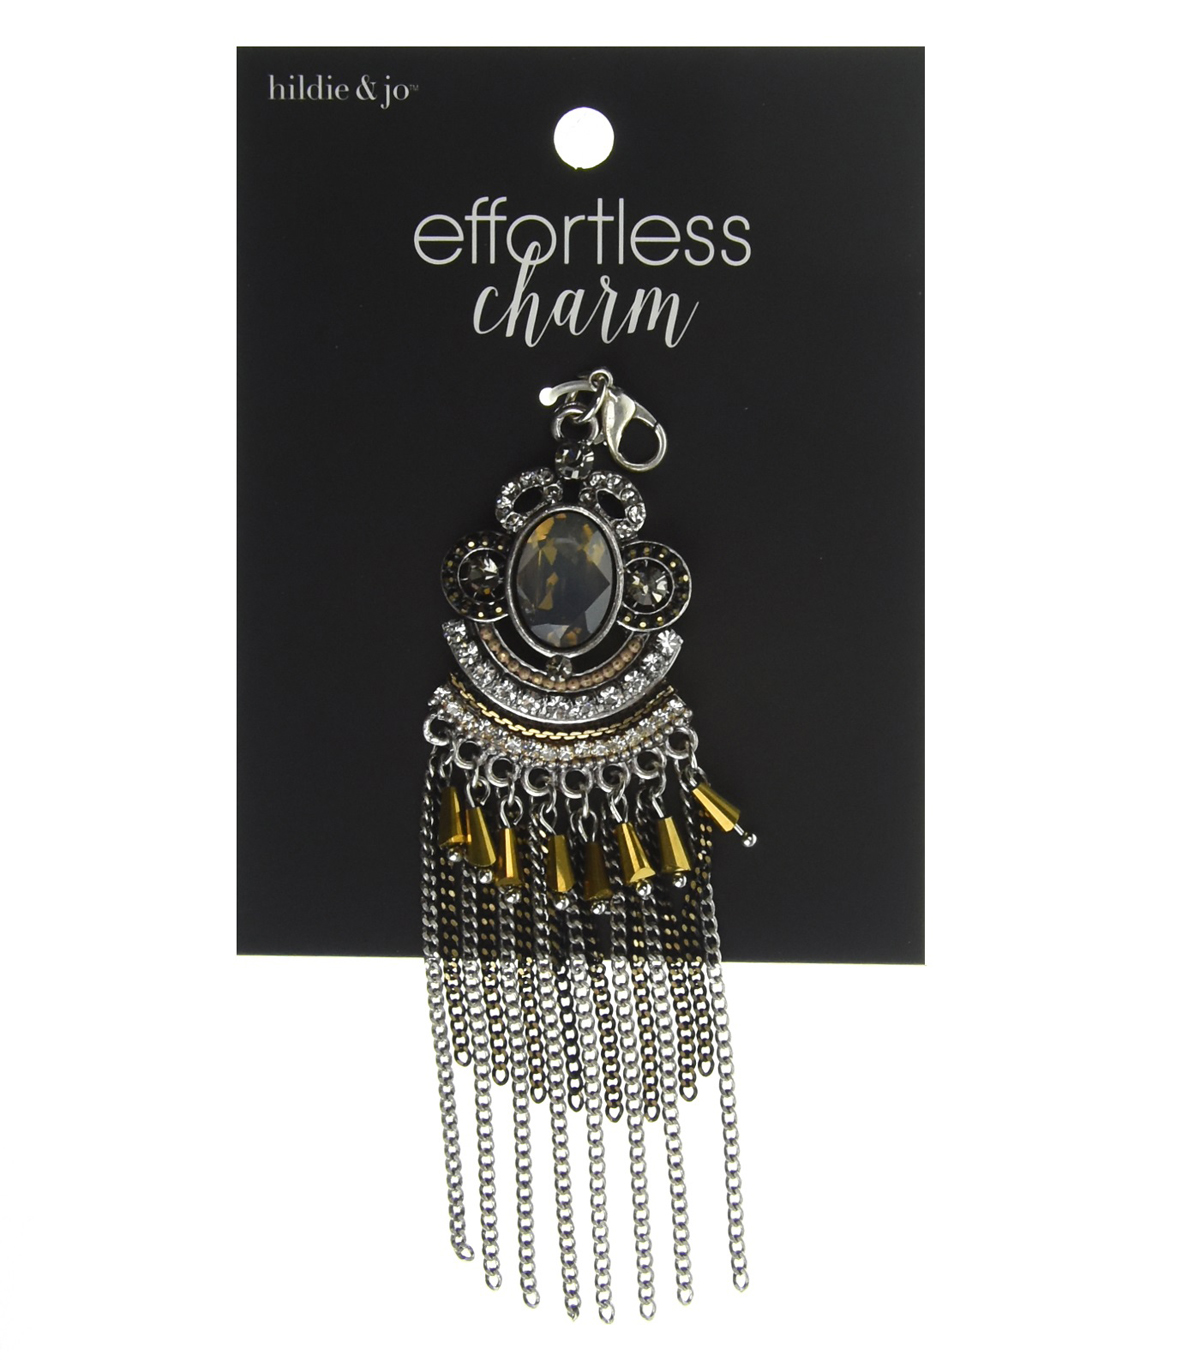 hildie & jo™ Effortless Charm Silver Tassel-Gold Stones